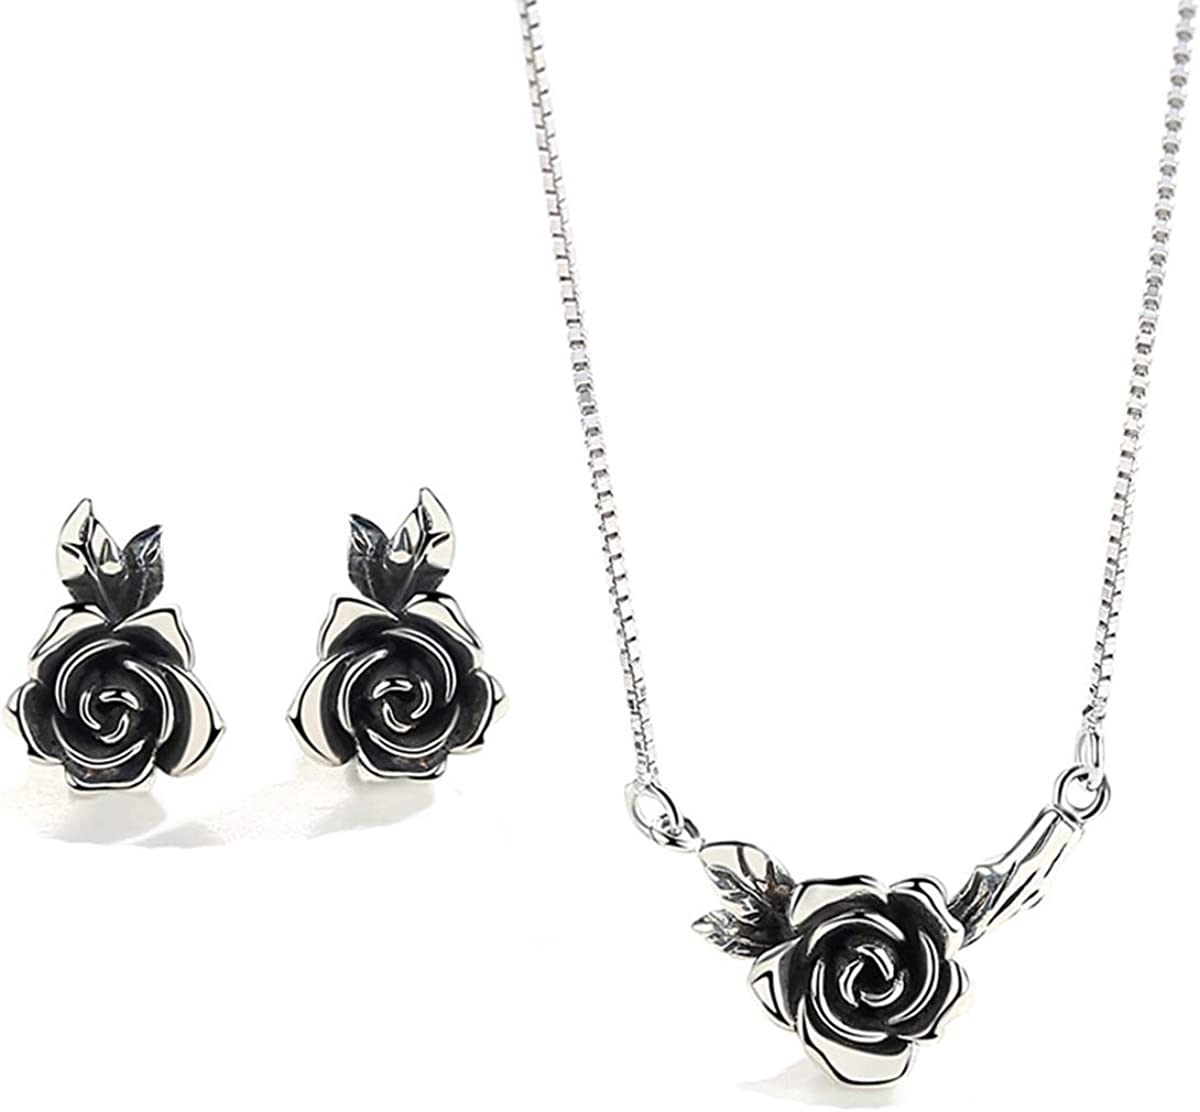 Onlyfo Retro 925 Silver Rose Flower Pendant Necklace Jewelry Box,Short Rose Necklace Women Antique Silver